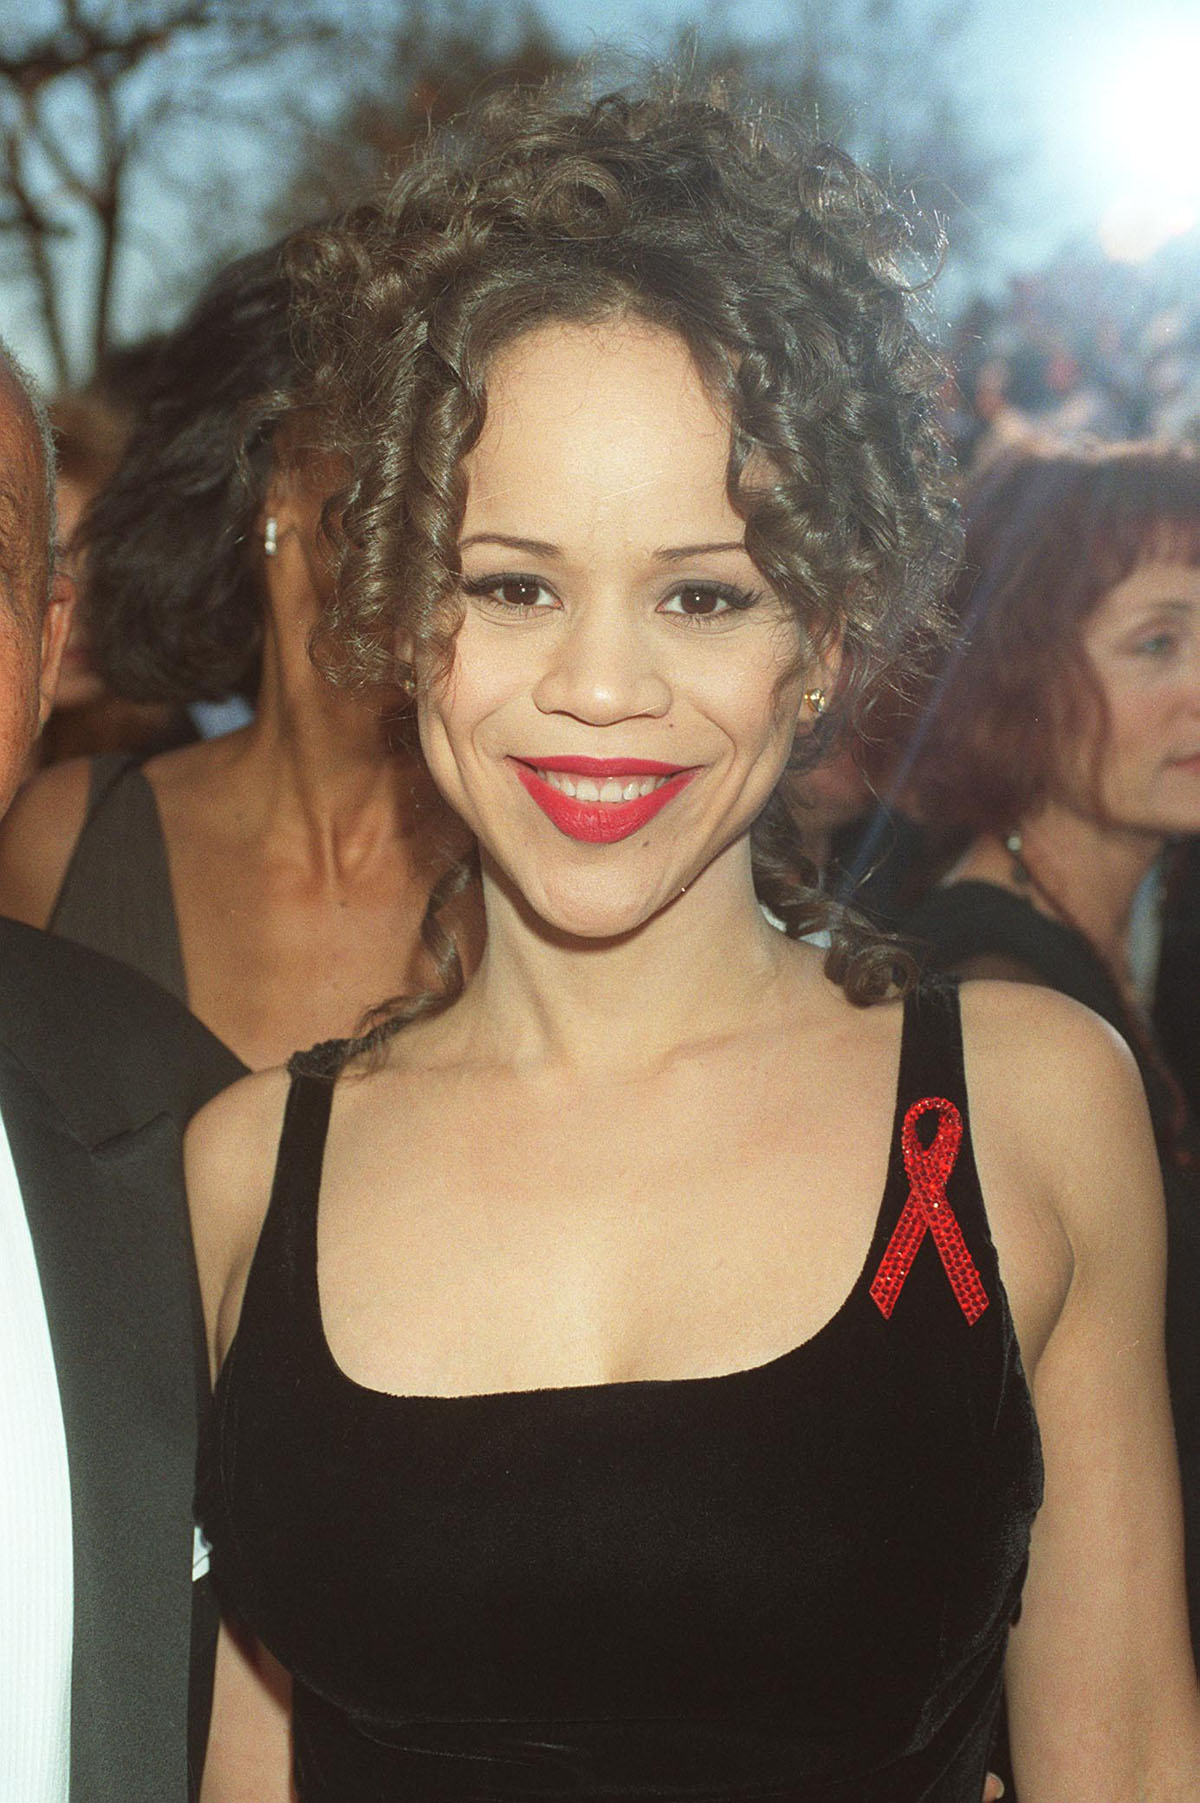 ROSIE PEREZ American Actress Attending the 1994 Academy Awards in Los Angeles COMPULSORY CREDIT: UPPA/Photoshot Photo UGL 007417/BB-32   21.03.1994